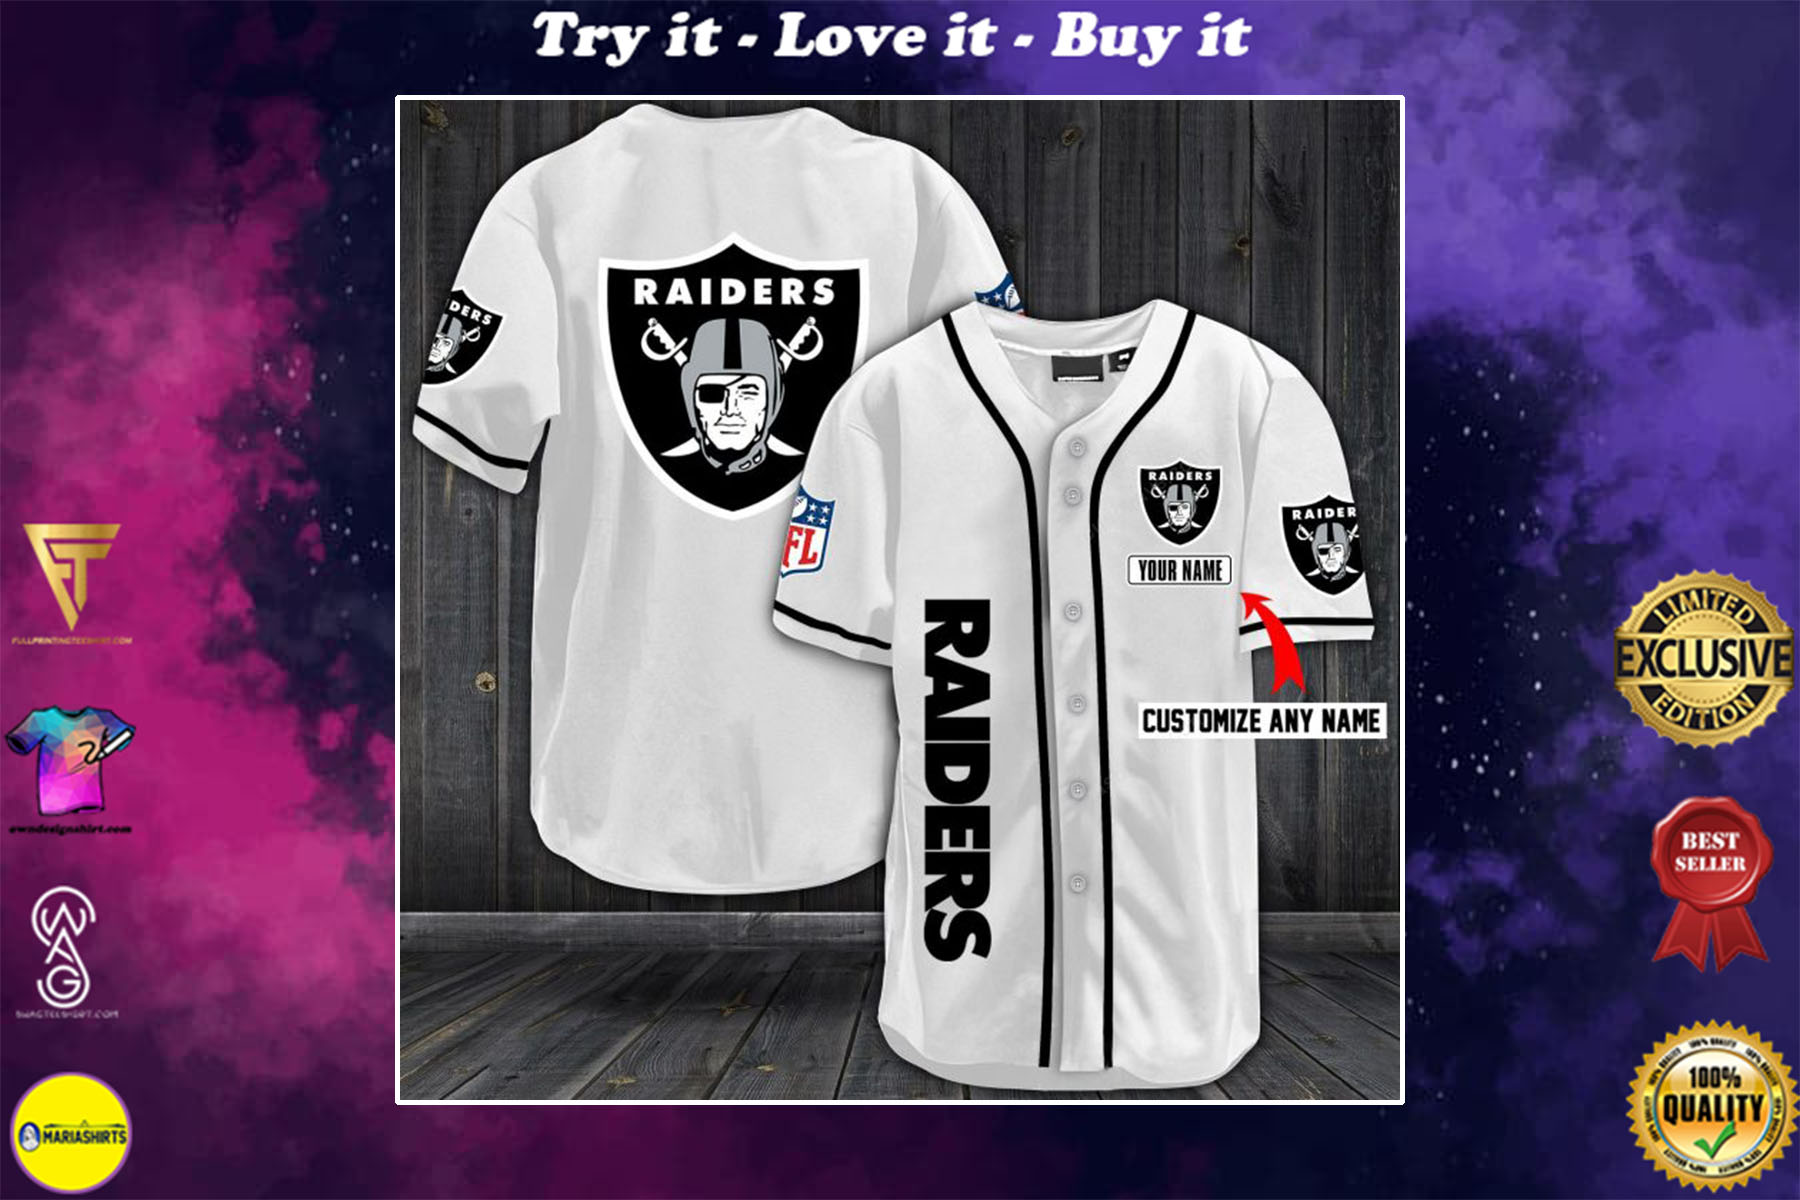 [special edition] personalized name jersey las vegas raiders full printing shirt - maria